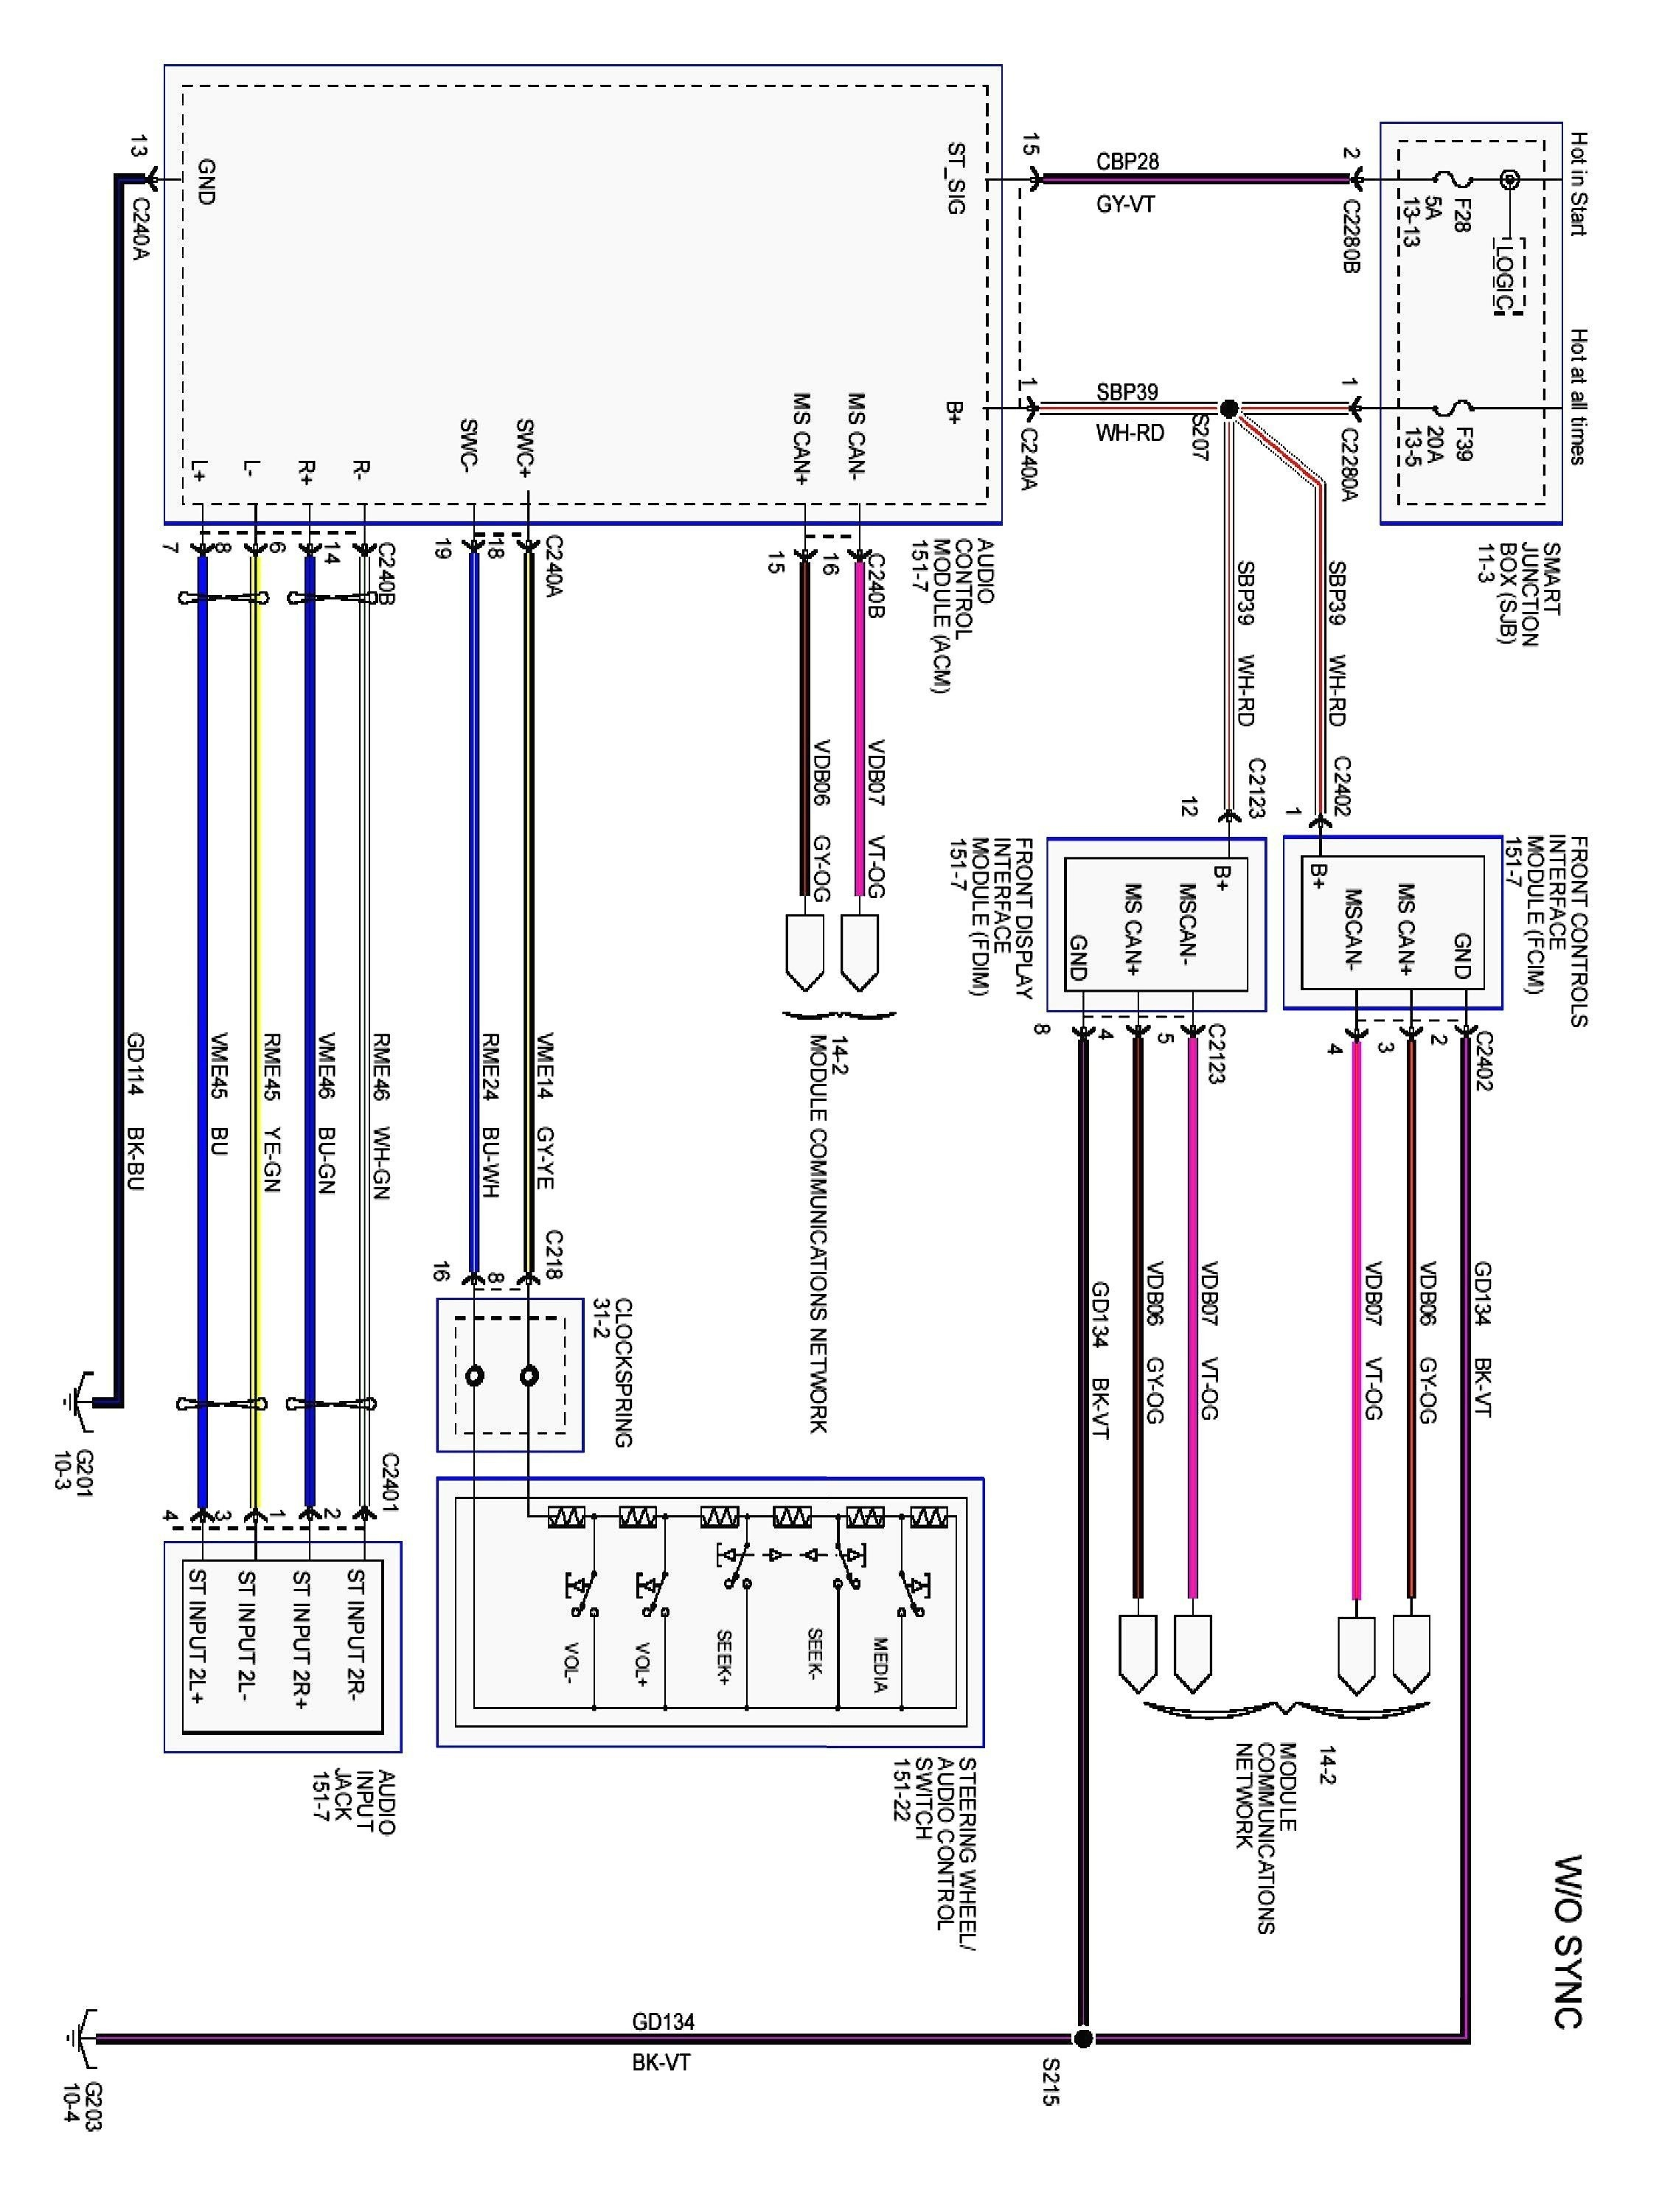 2005 ford Focus Engine Diagram ford Focus Radio Wiring Color Code Moreover ford Stereo Wiring Of 2005 ford Focus Engine Diagram